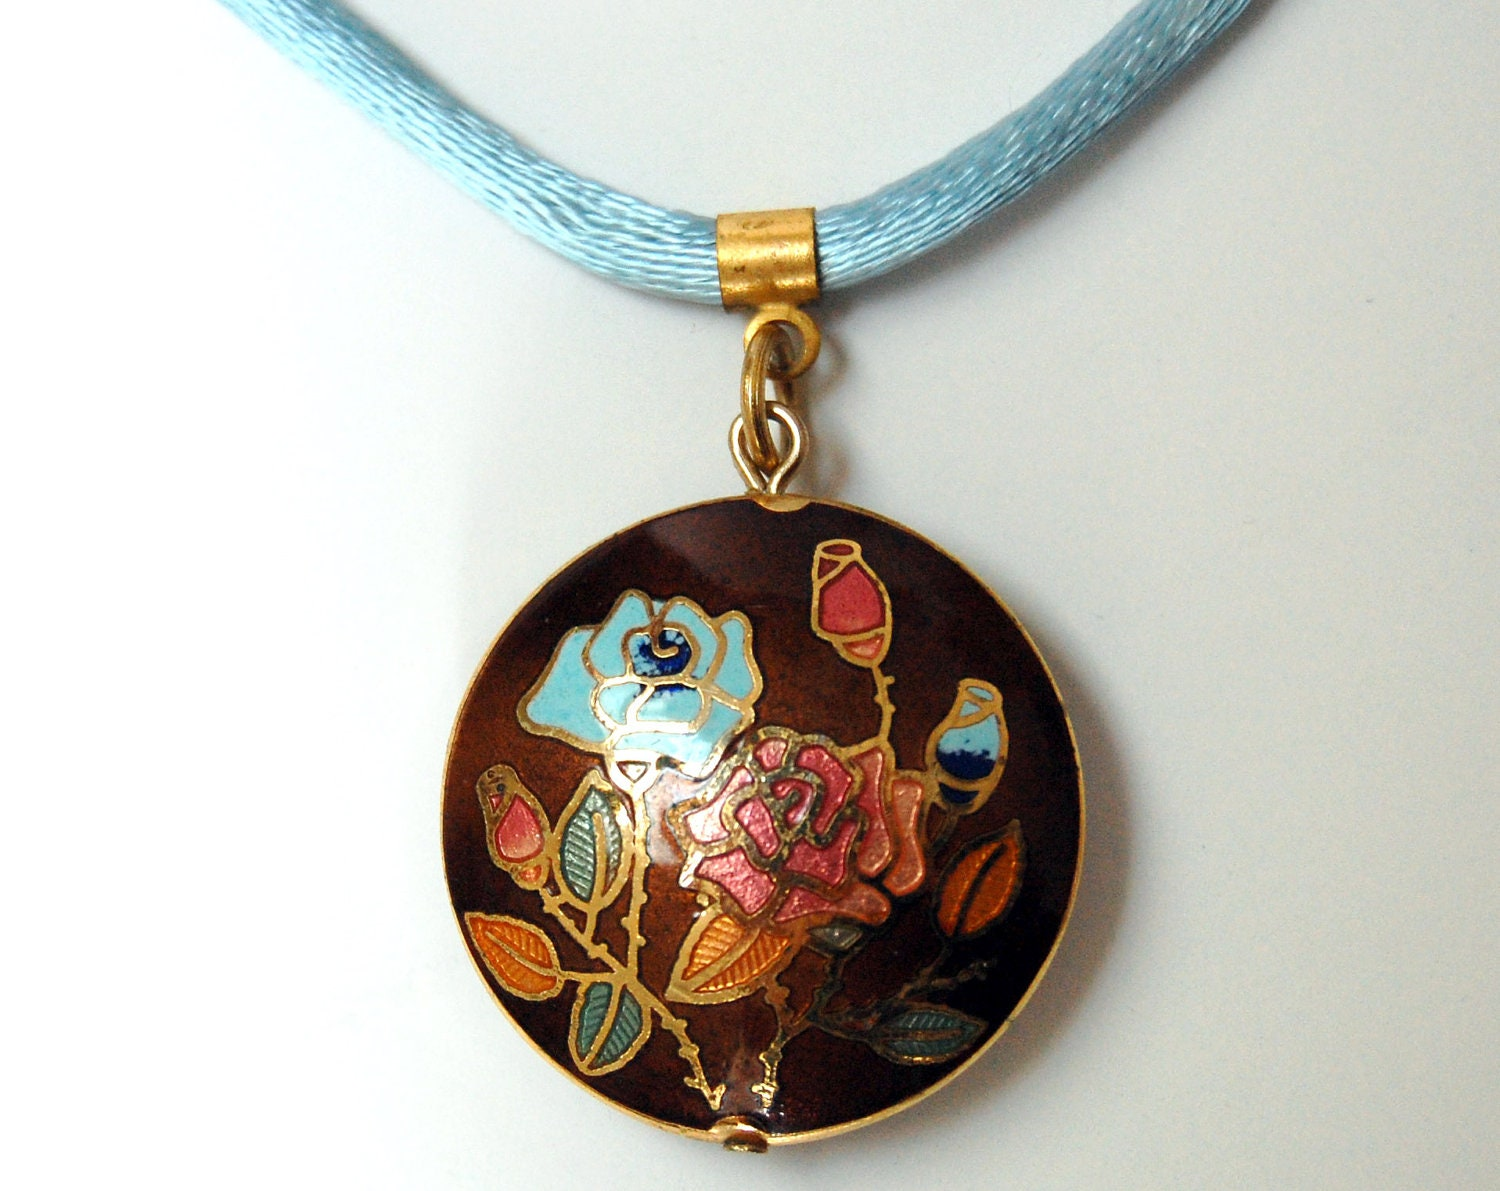 Vintage Cloisonne Necklace - Round with Roses - EDCCollective